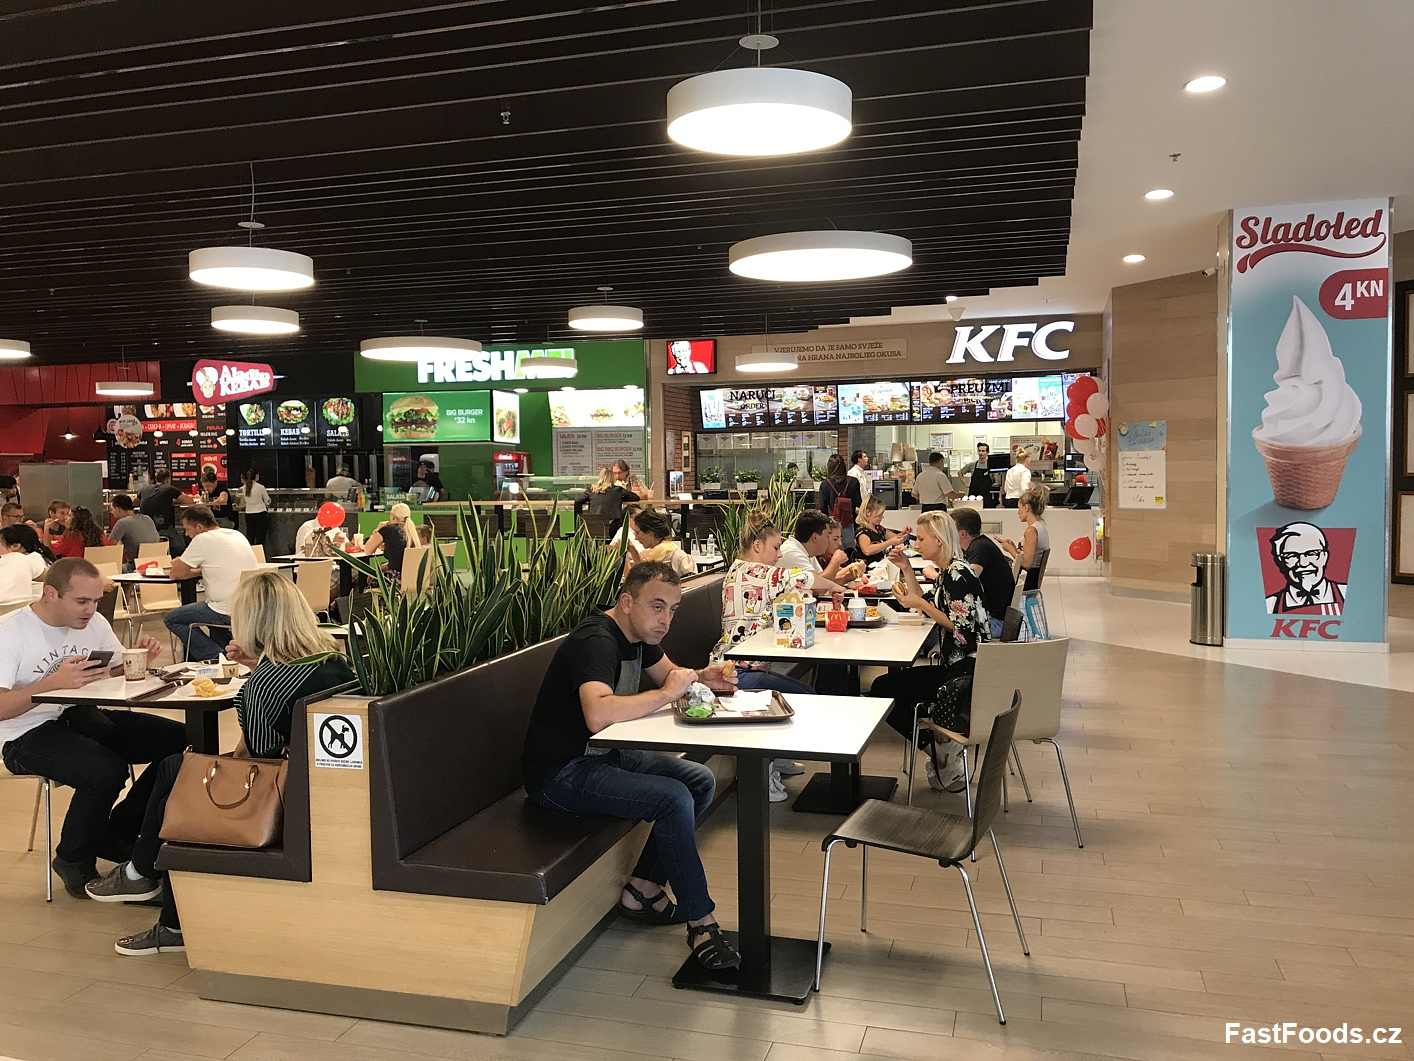 KFC City Center One West, Hrvatska, Chorvatsko, fastfoods.cz